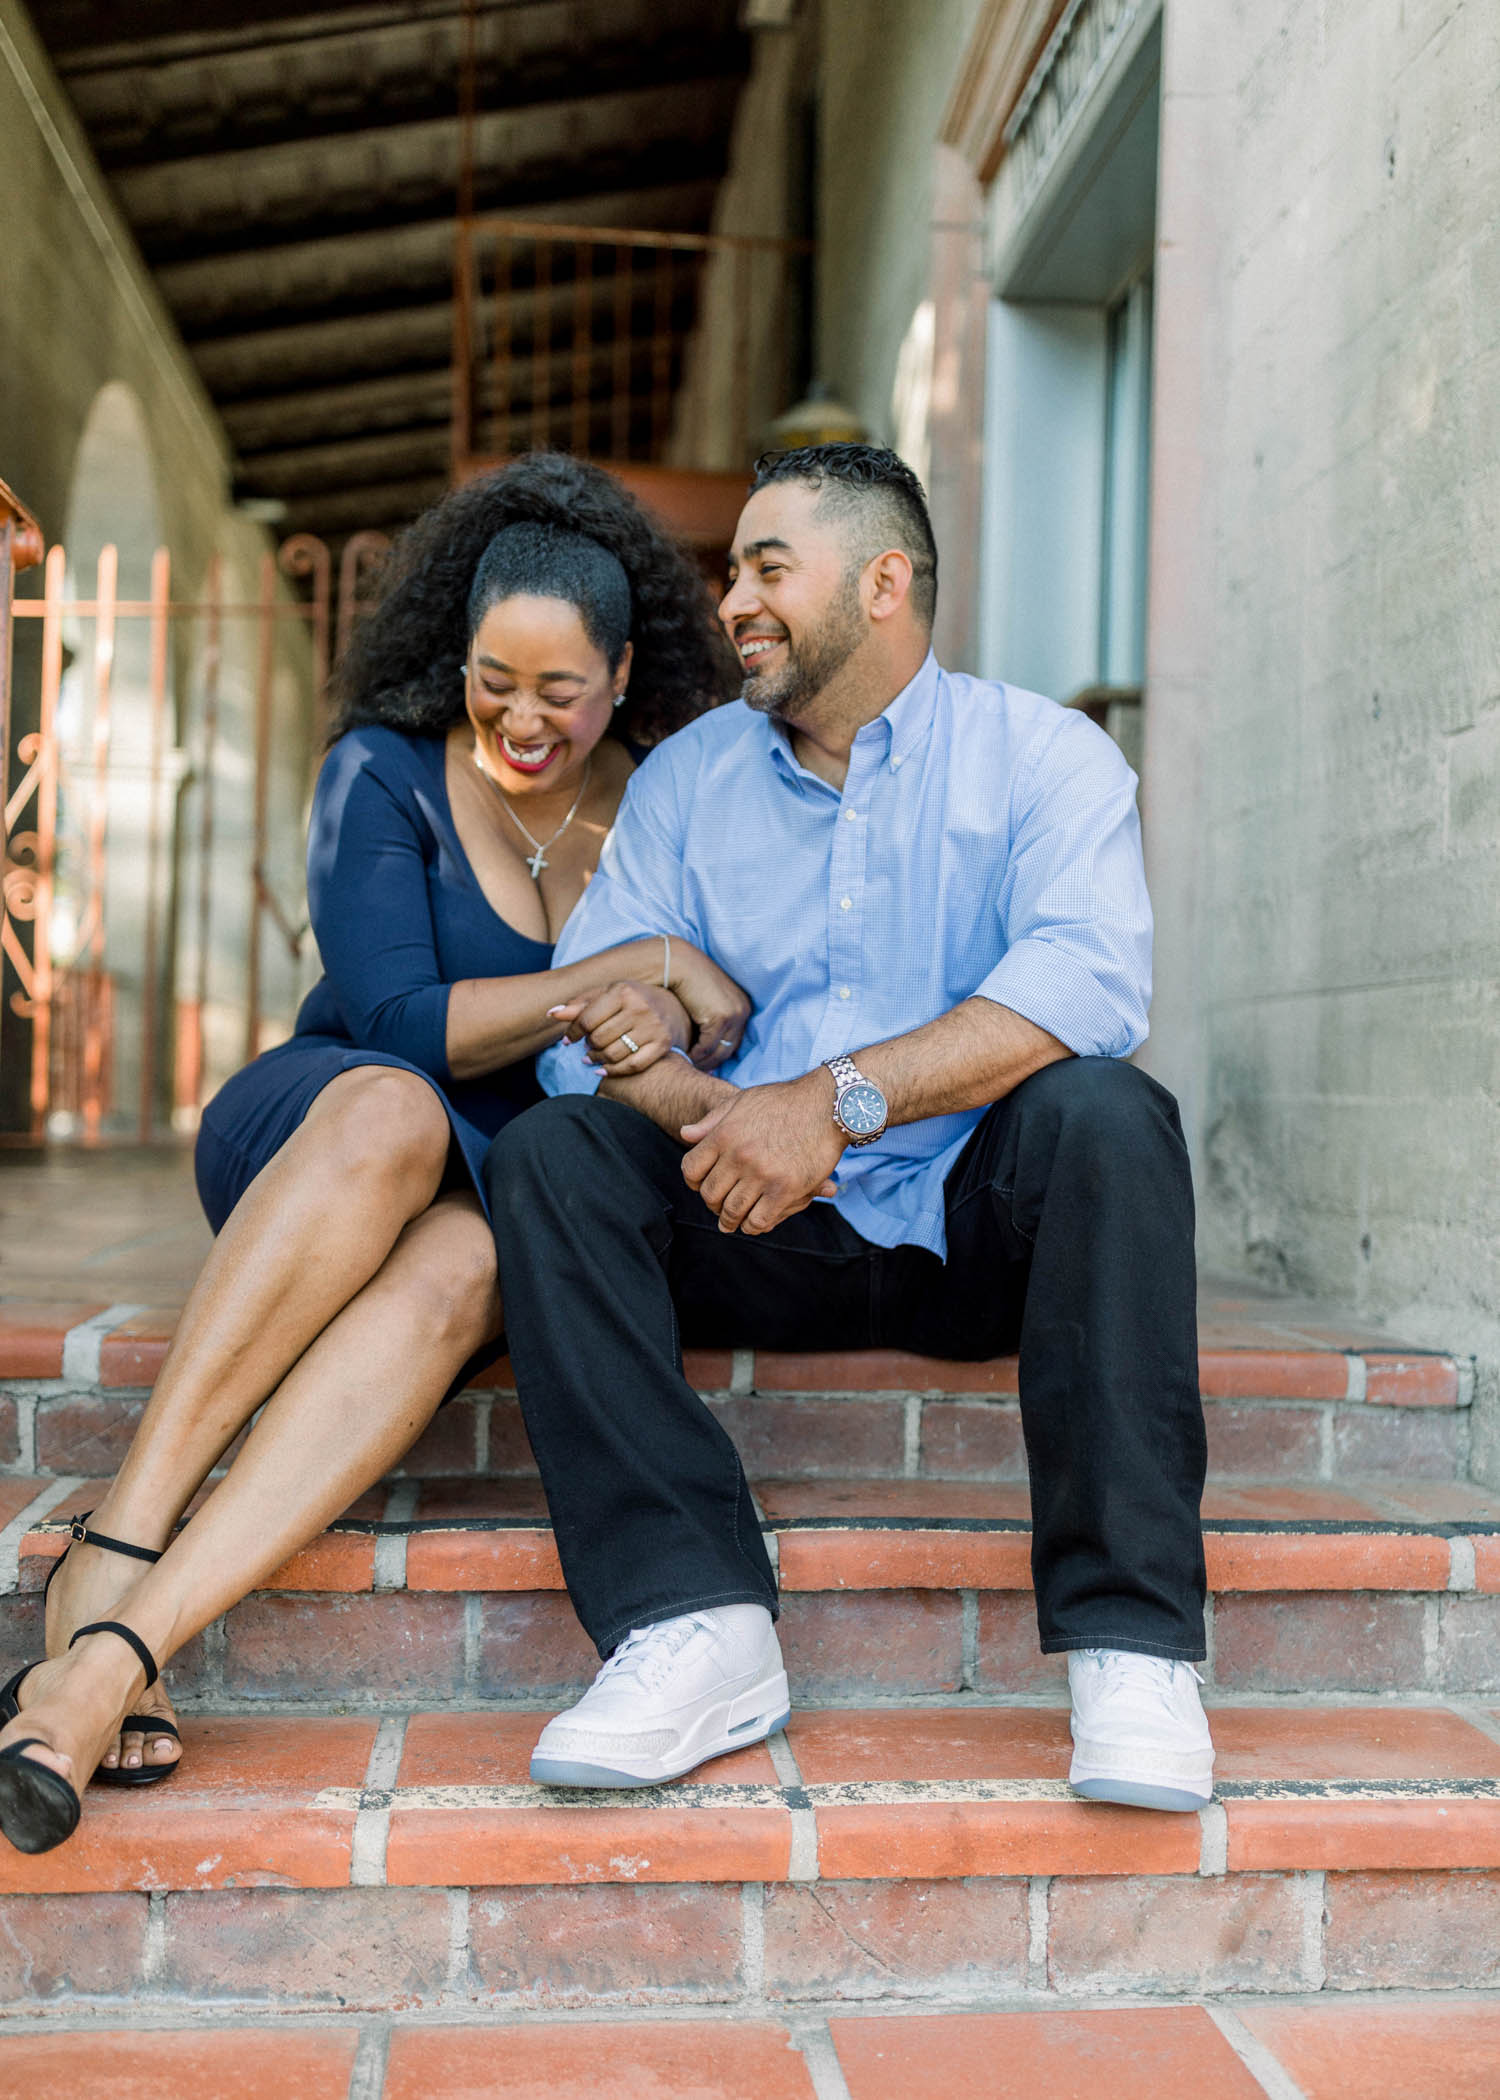 downtown_riverside_engagement_010.jpg